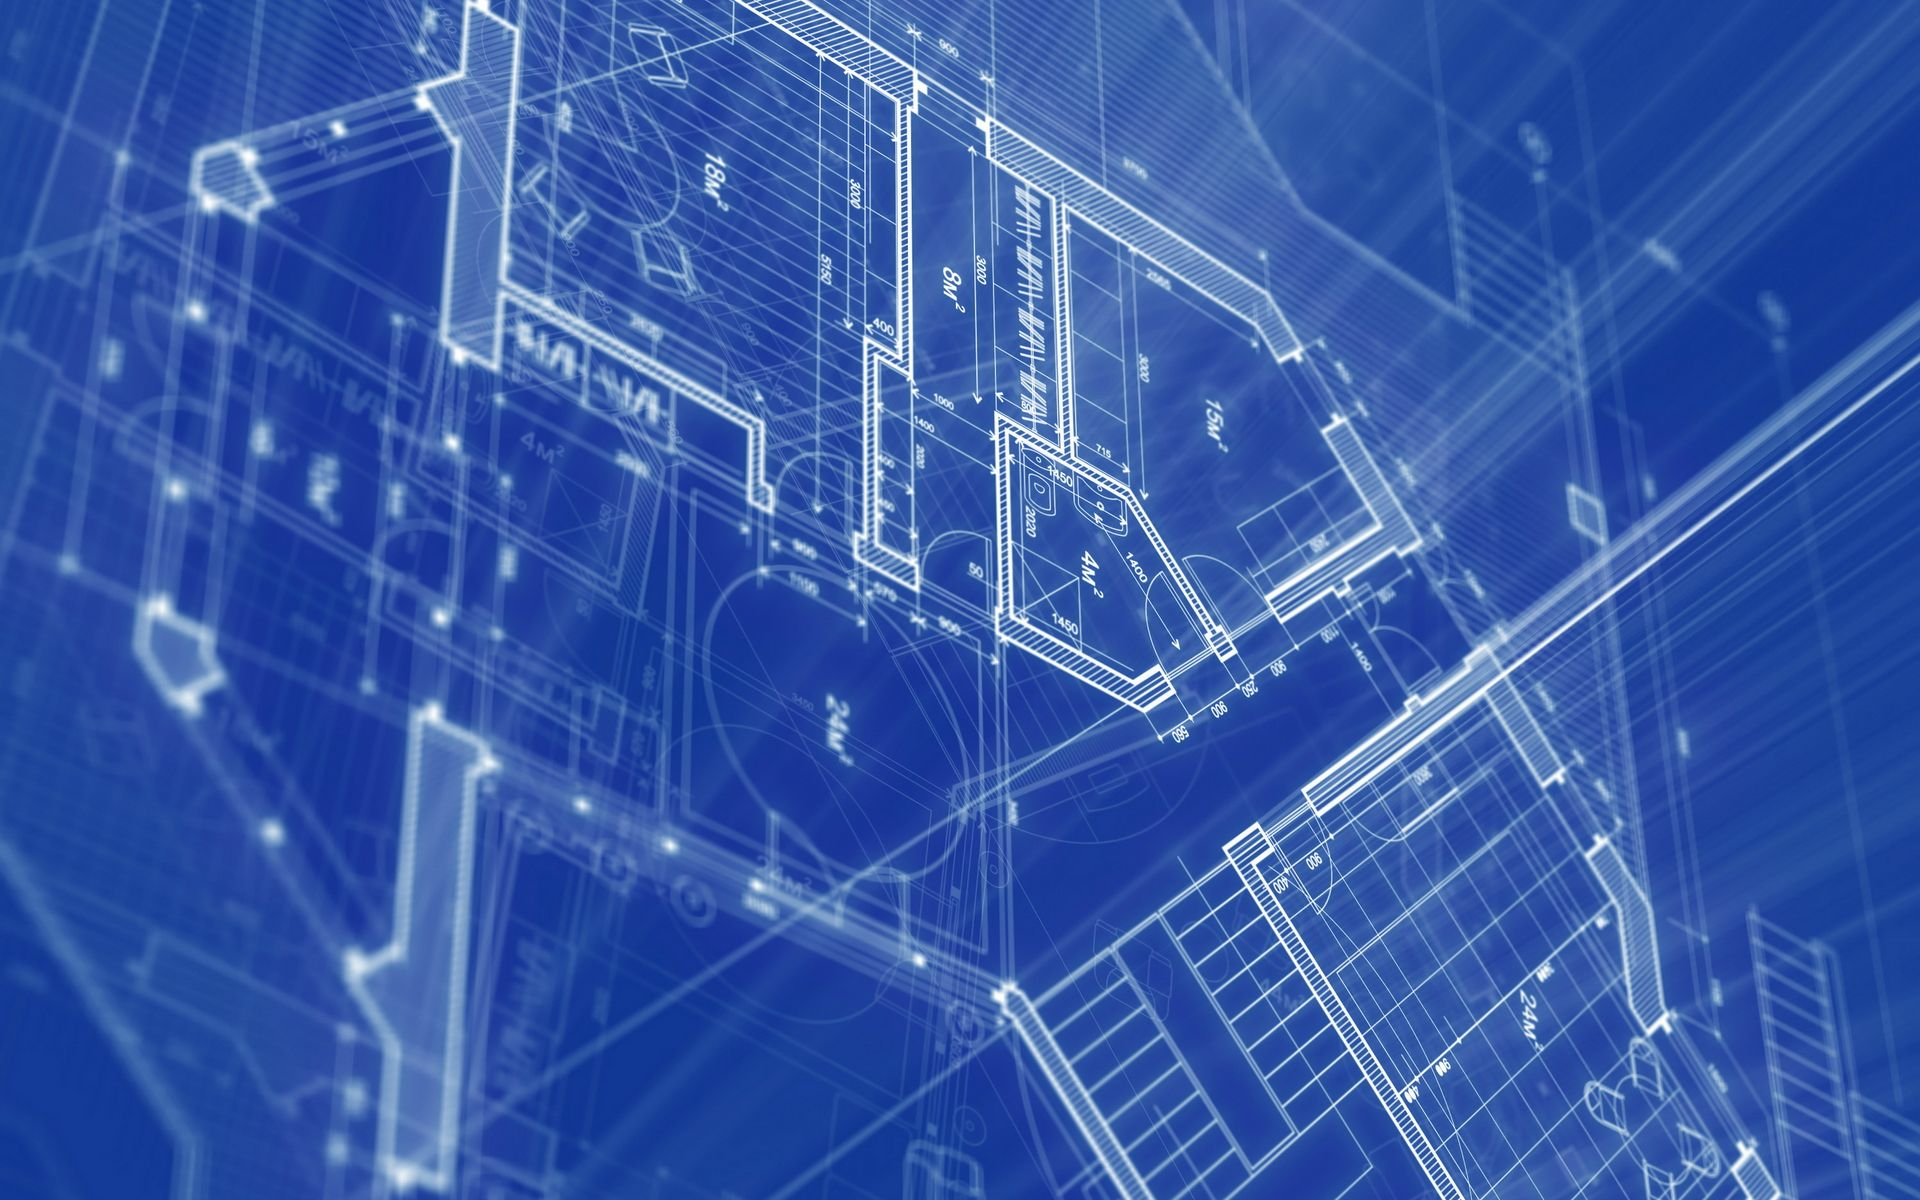 Blueprint wallpaper wallpaper animated background for Architecture design blueprint